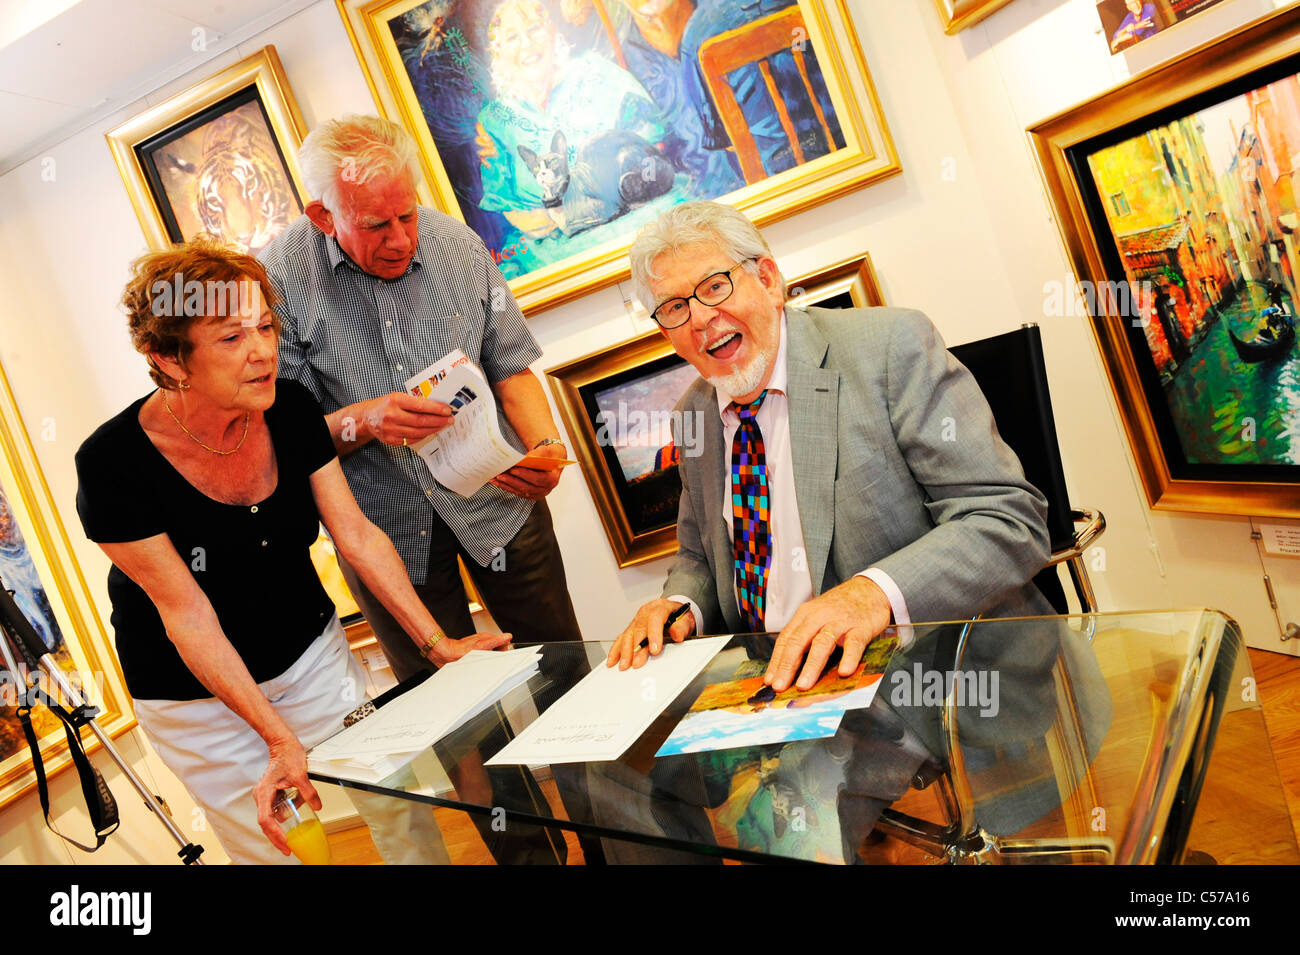 rolf harris at a book signing at an art gallery in Windsor Stock Photo